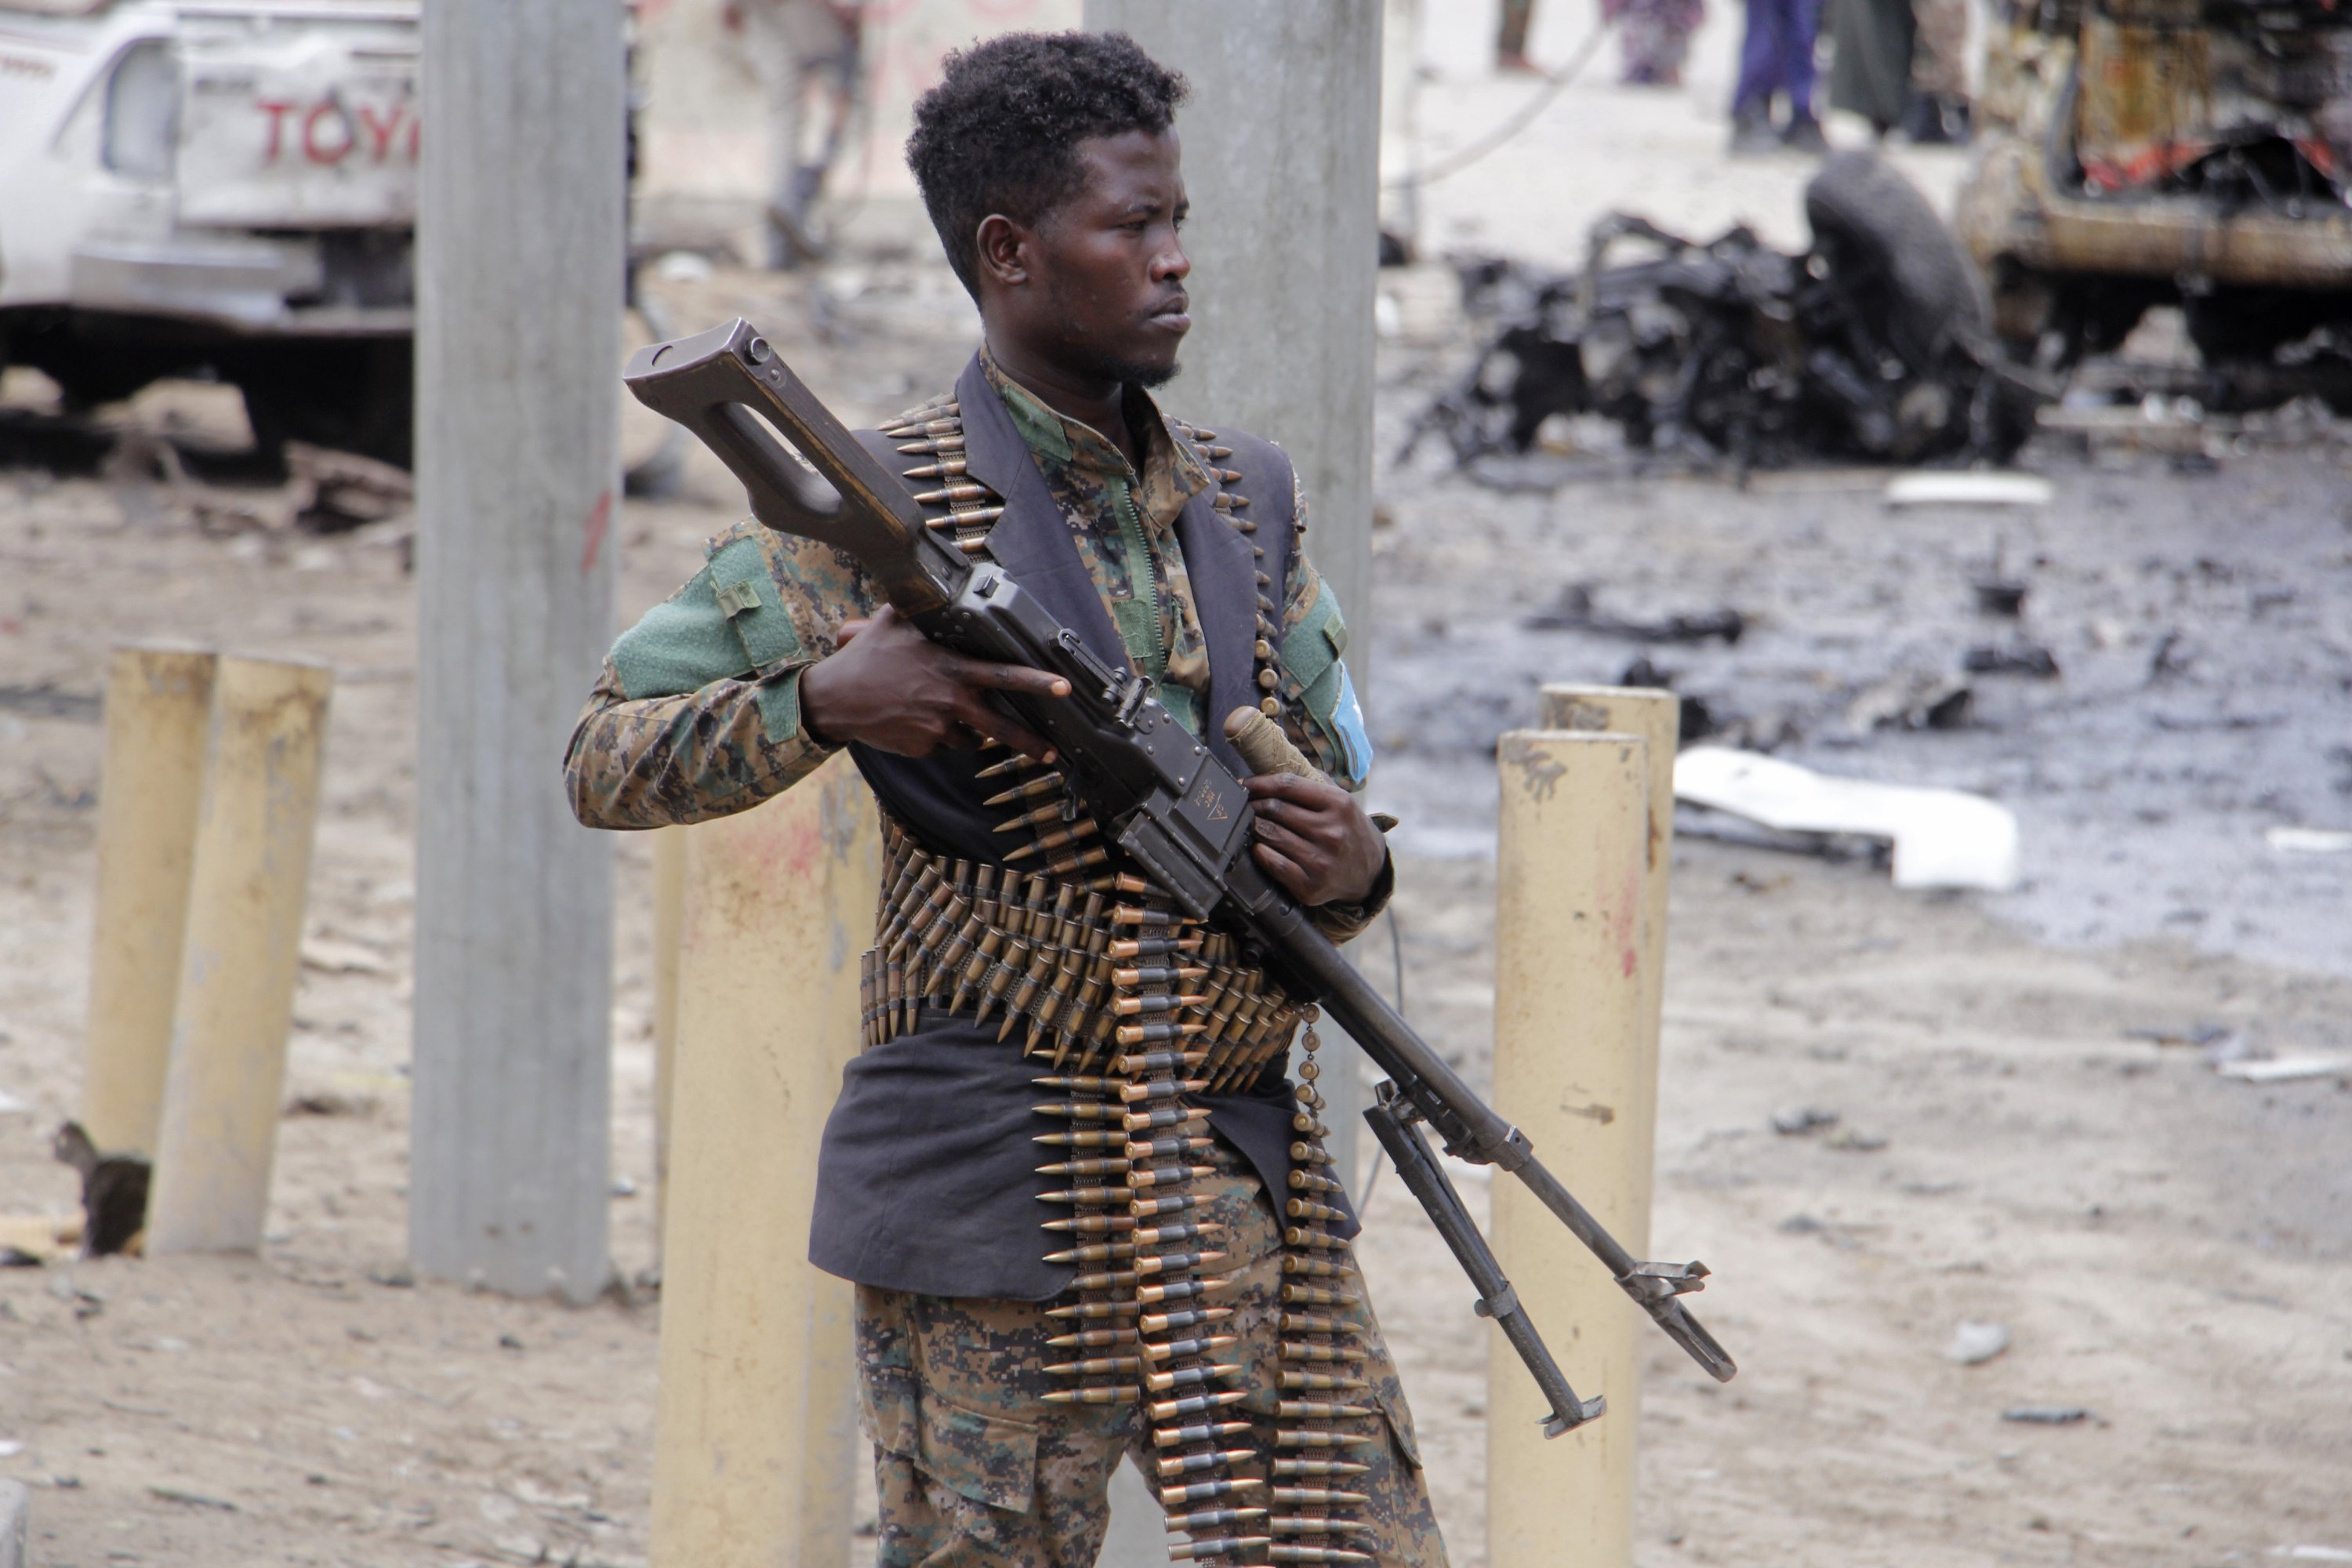 A Somali soldier secures the area after a car bomb attack at a Presidential Palace checkpoint in Mogadishu, Somalia, Saturday Sept. 25, 2021. (AP Photo)